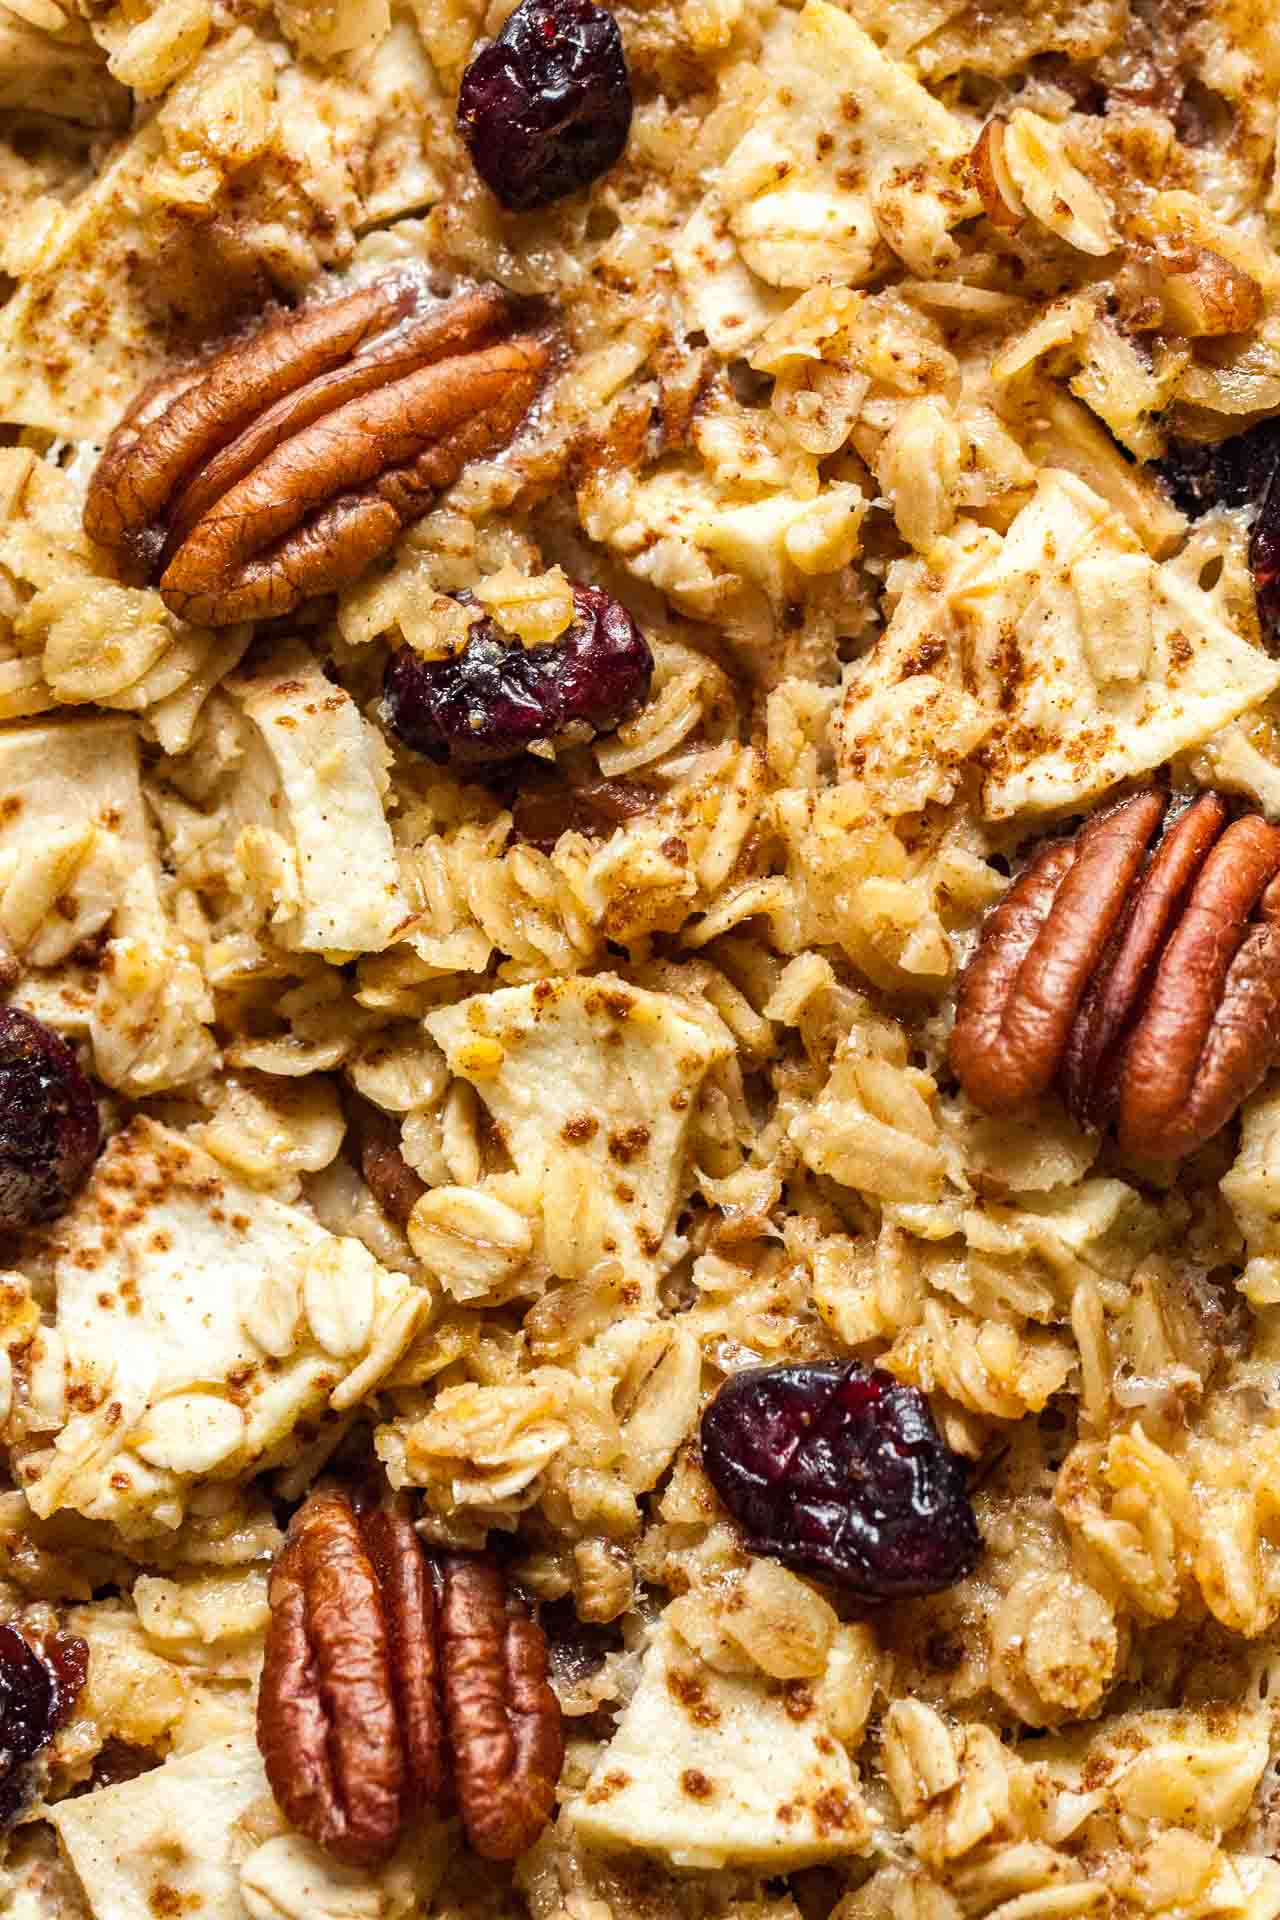 Baked Apple Cinnamon Oatmeal makes a delicious holiday breakfast that can be made ahead and reheated!